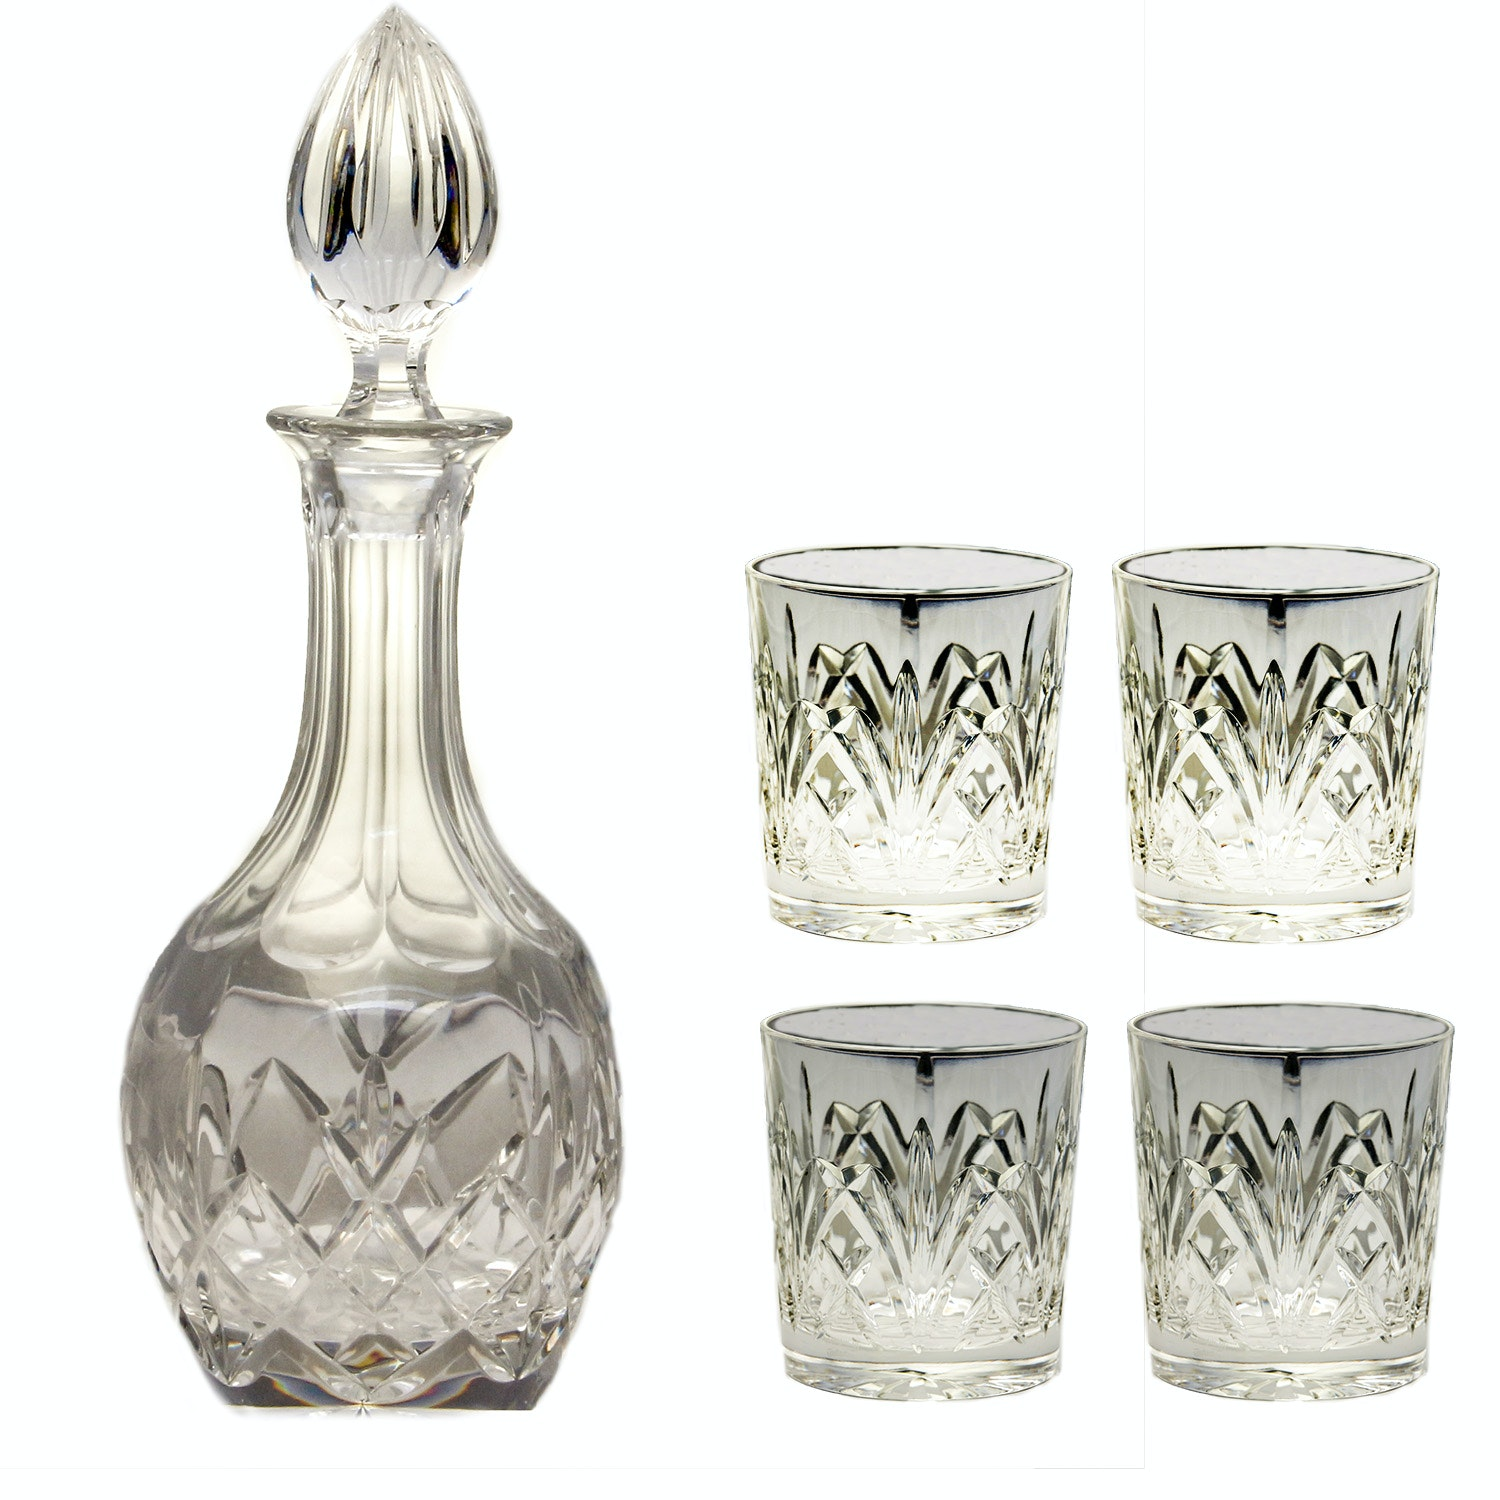 A Waterford Decanter with Glasses